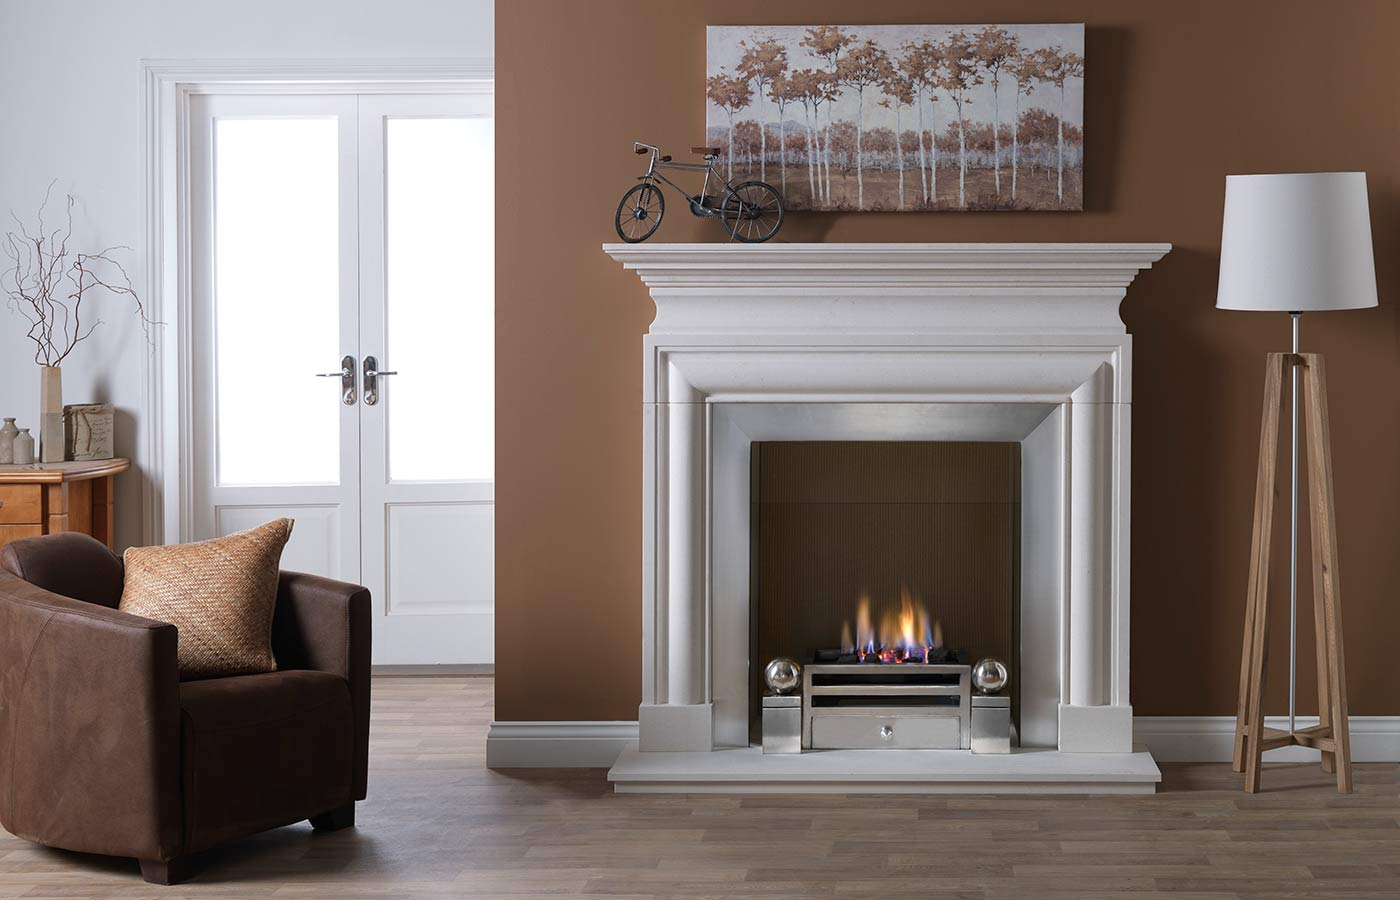 Avellino Agean Limestone with Elan Gas Fire Basket